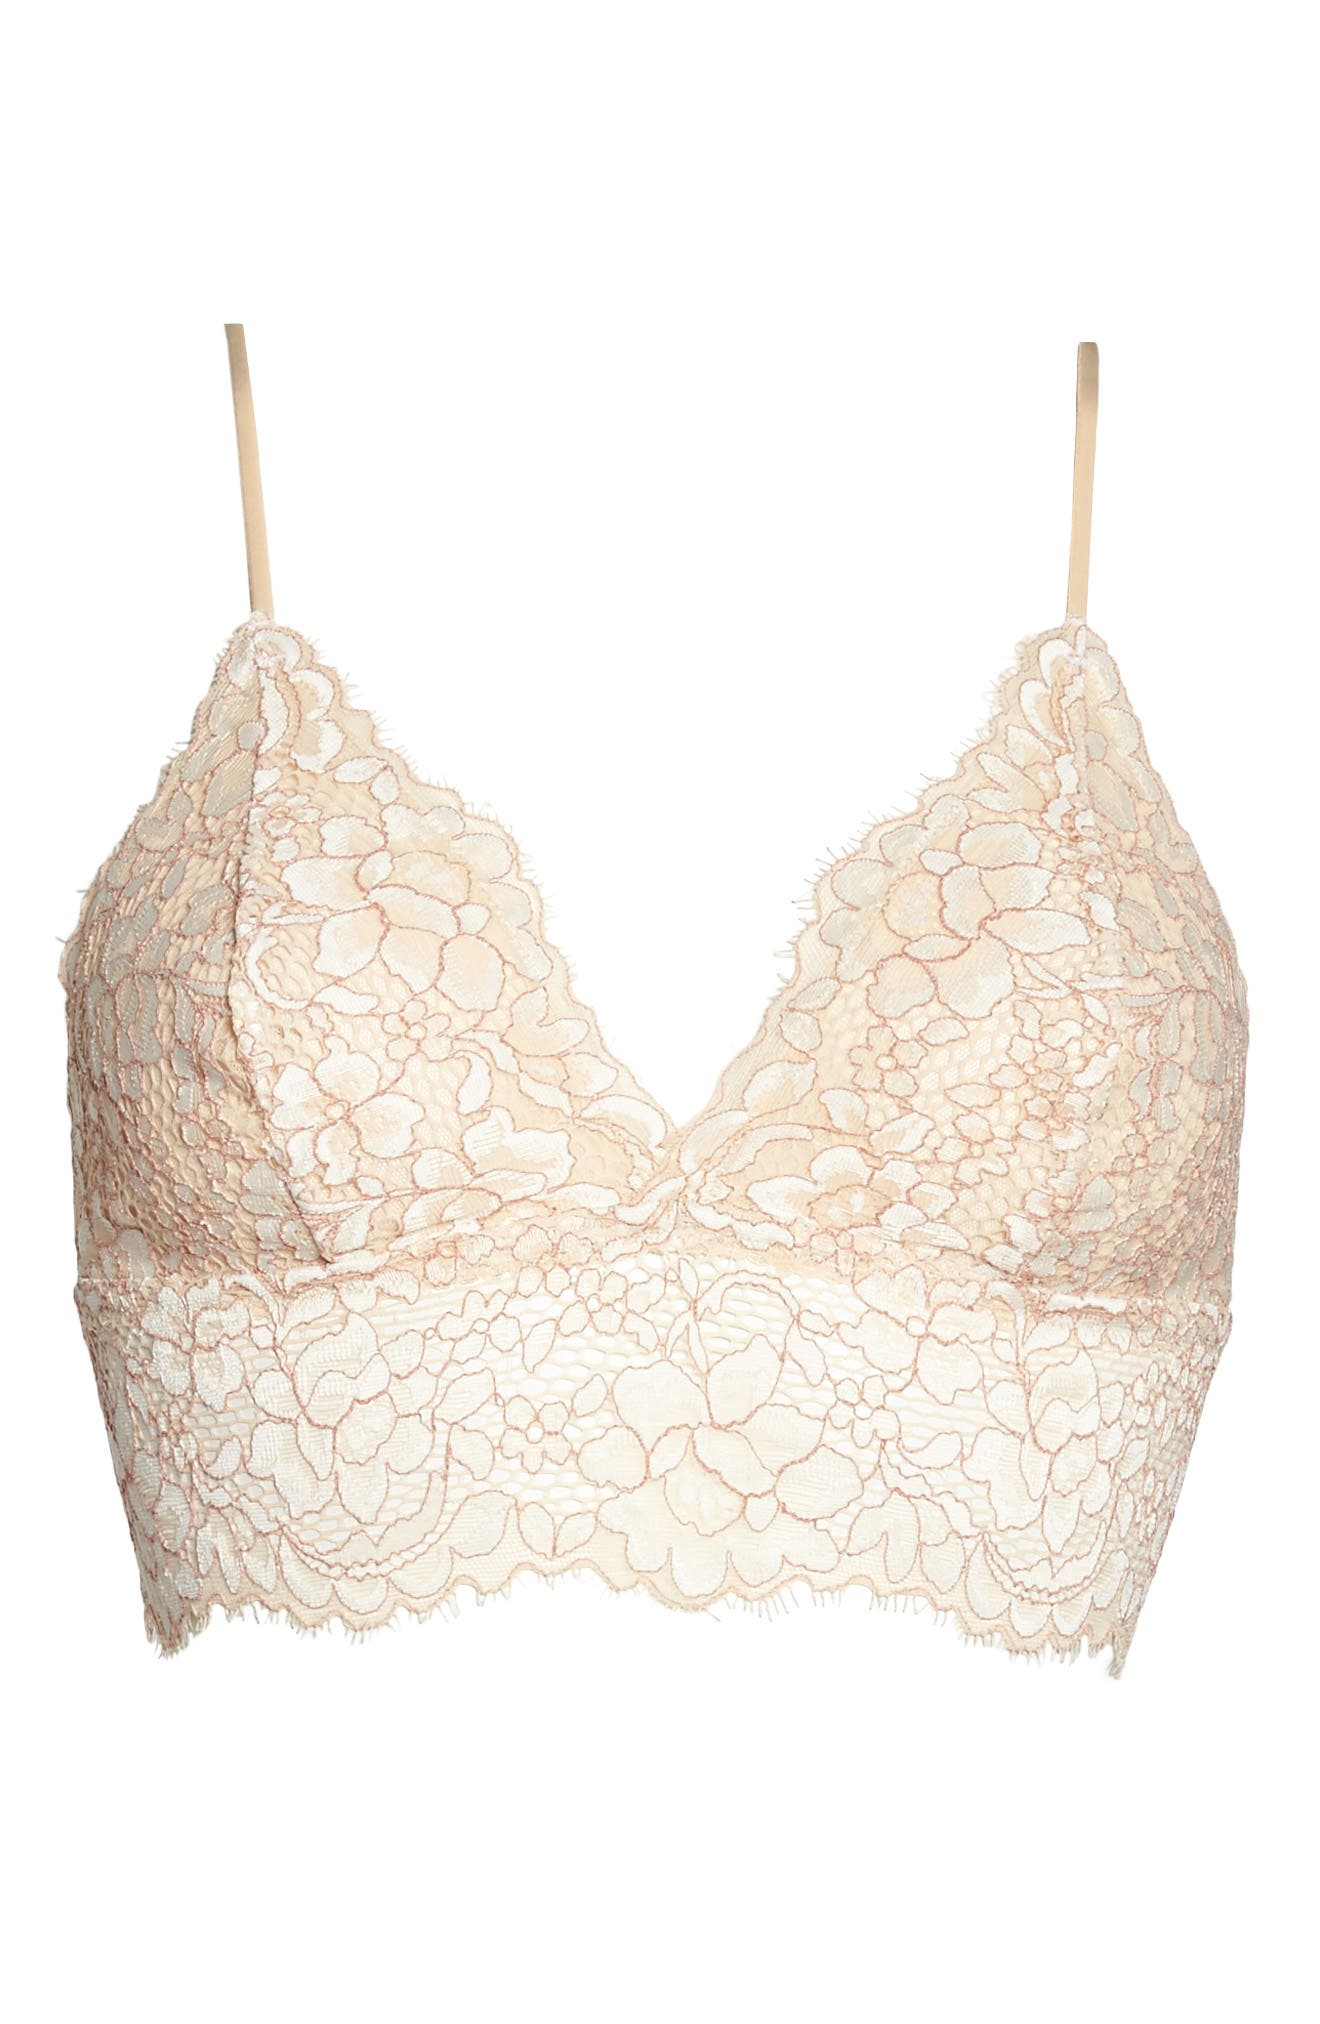 Pret Longline Triangle Bralette,                             Alternate thumbnail 4, color,                             Moon Iv/ Mandorla